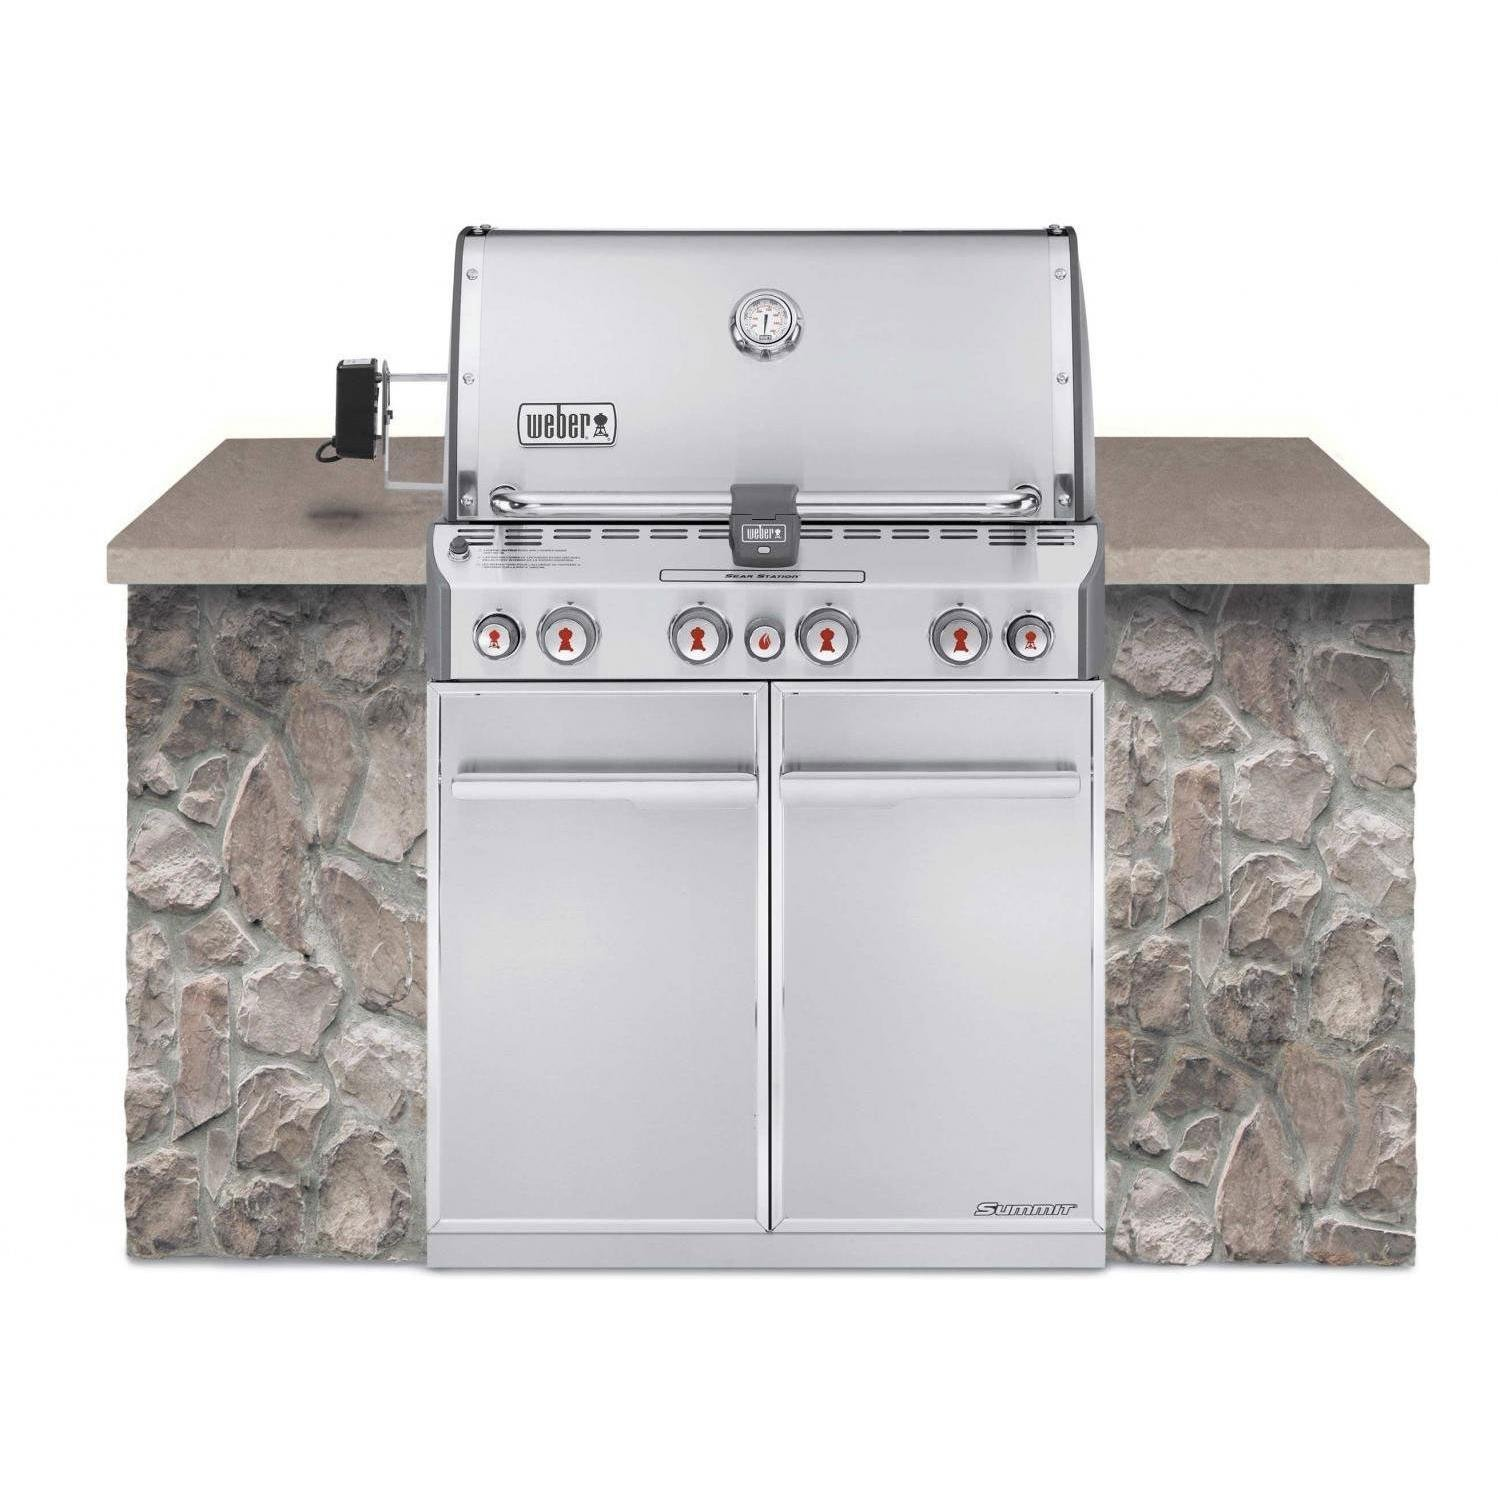 SUMMIT S-460 BUILT-IN GRILL